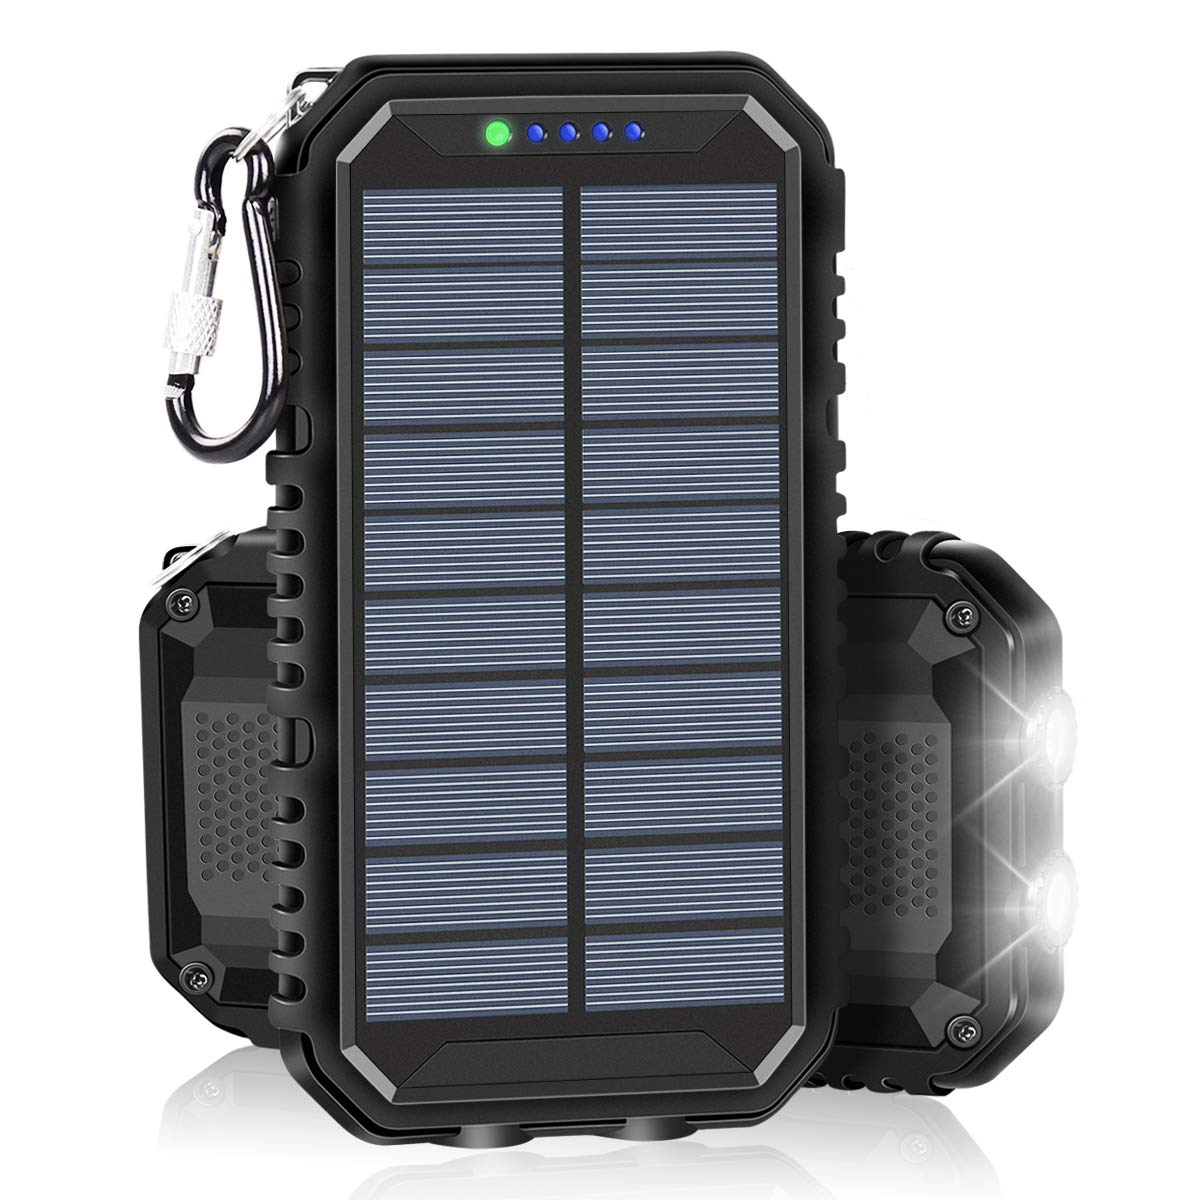 Solar Charger 15000mAh Portable Power Bank with 2.4A Outputs Weatherproof for iPhone, ipad, Samsung, Smart Phones and Outdoor Camping by SOARAISE